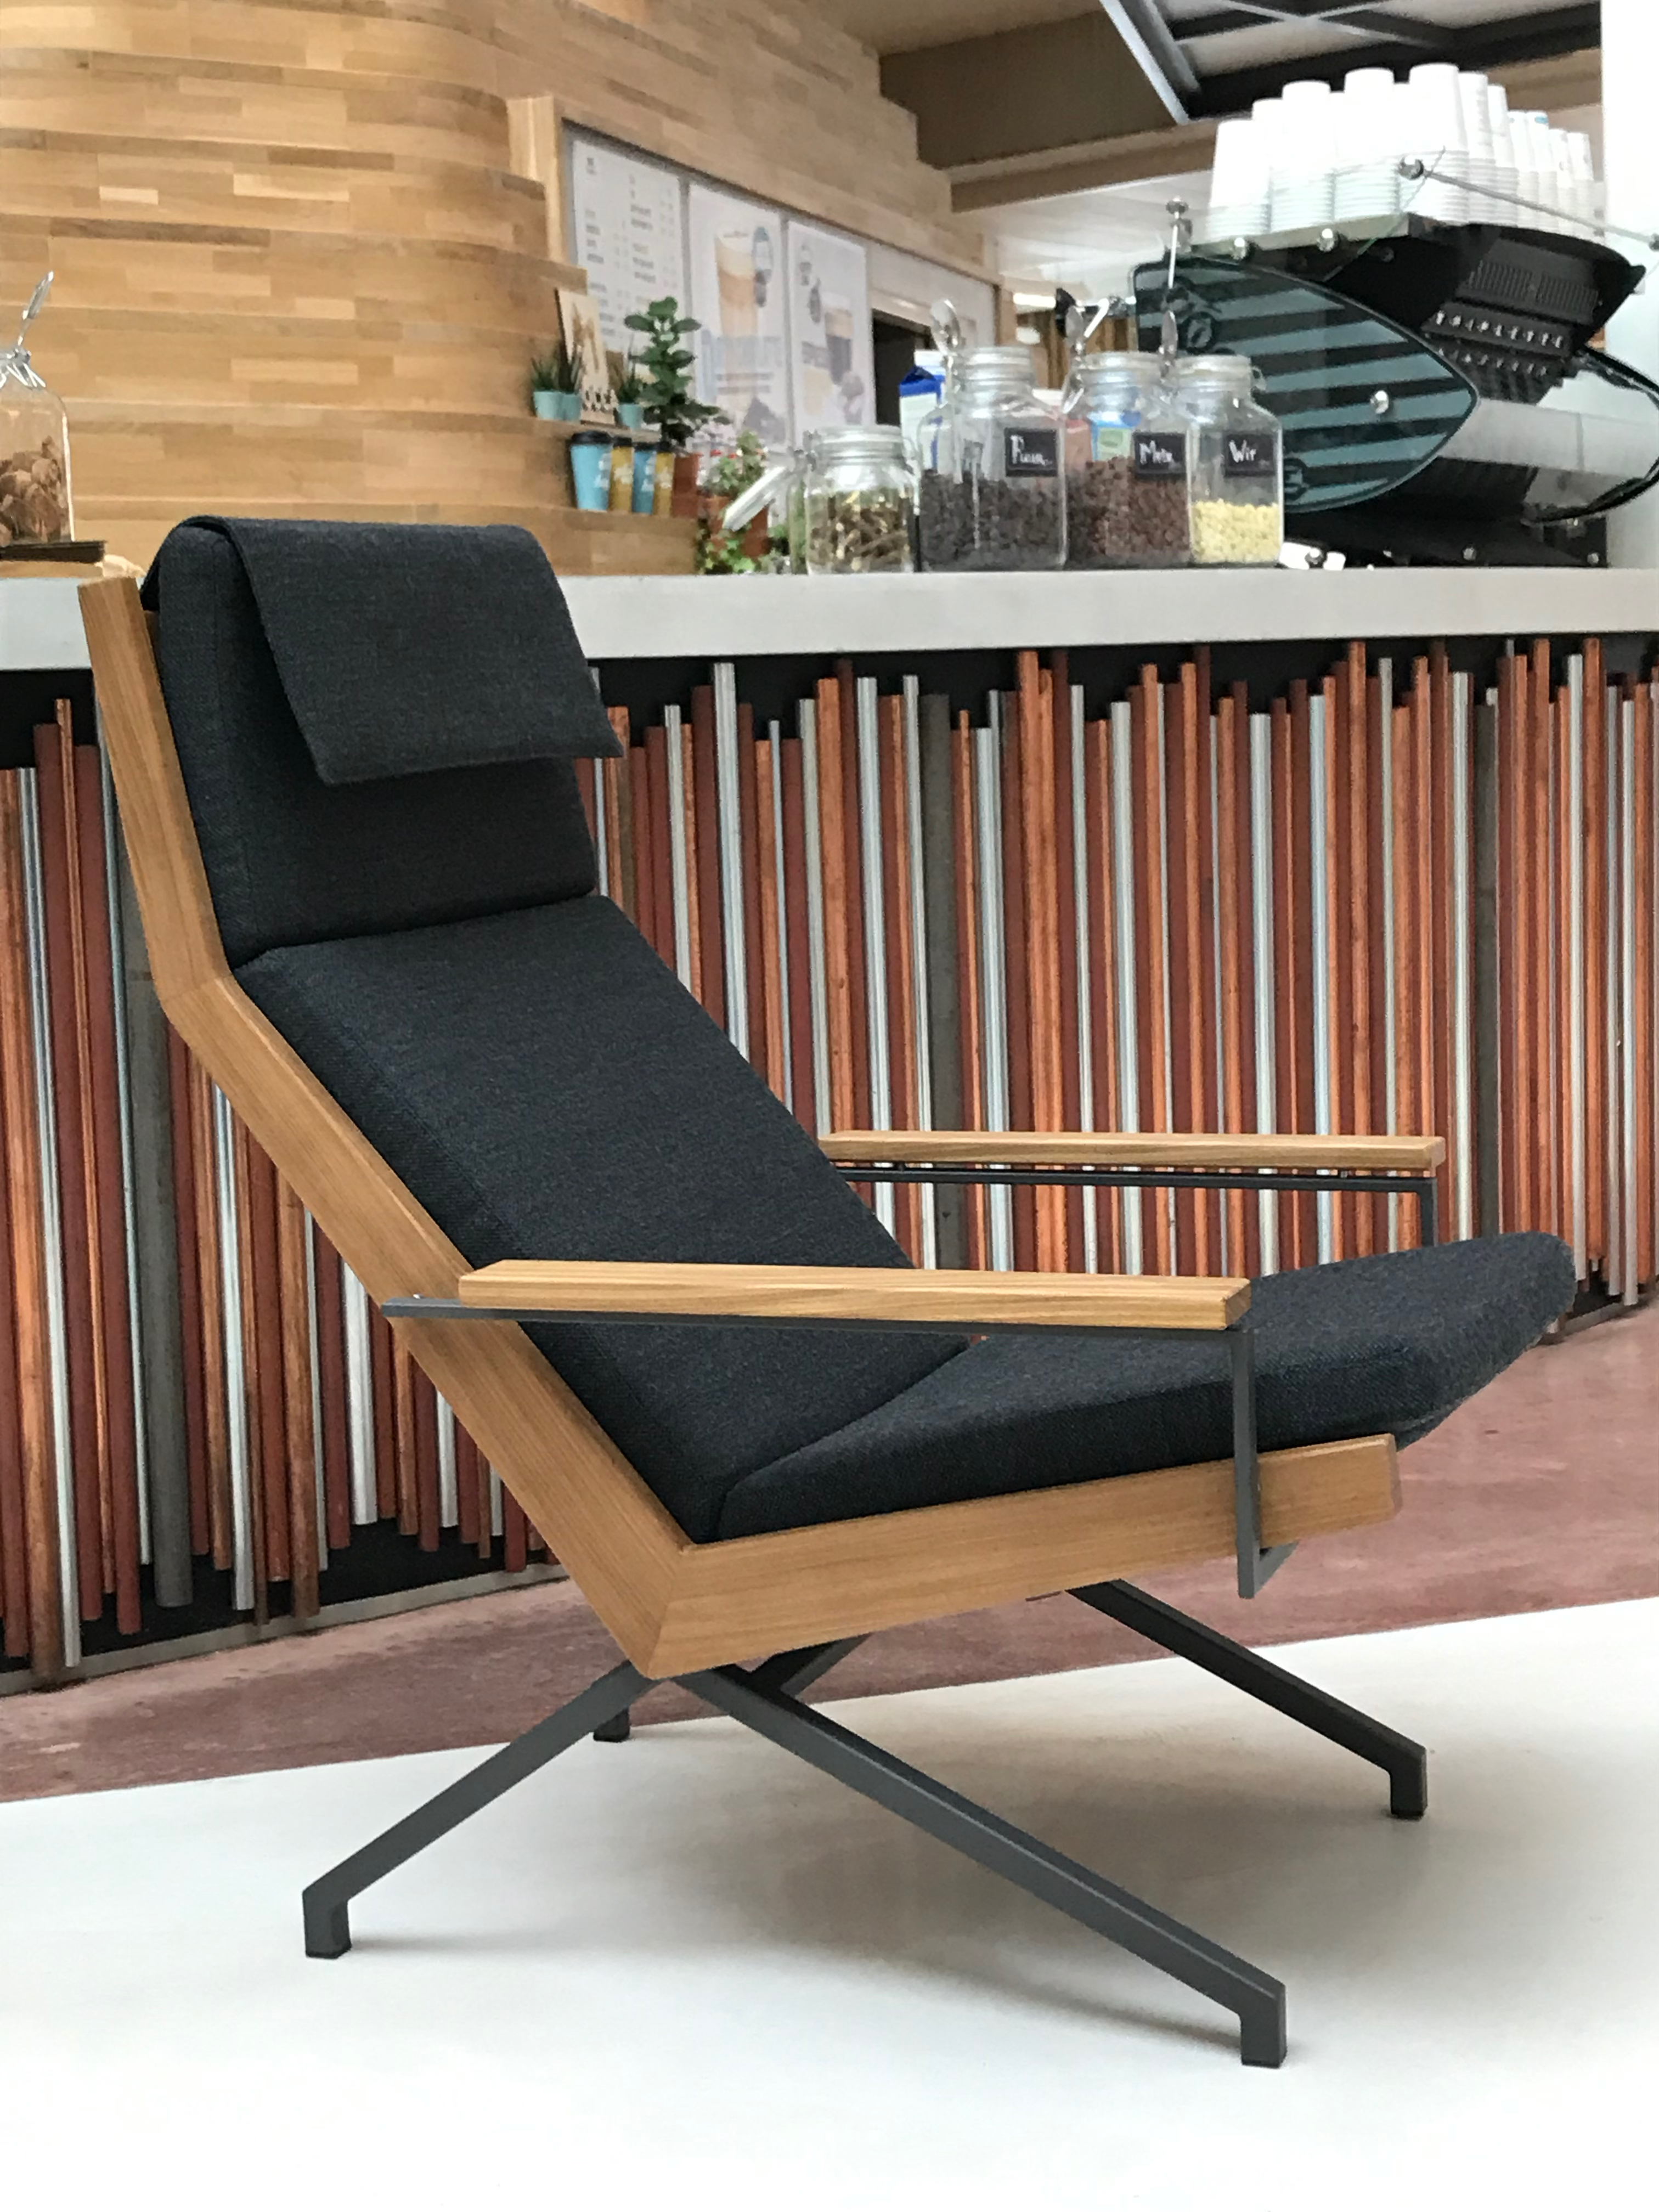 Rob Parry Fauteuils.Diverse Rob Parry Original Lotus Lounge Chair Vintage Fauteuils Sixties Retro